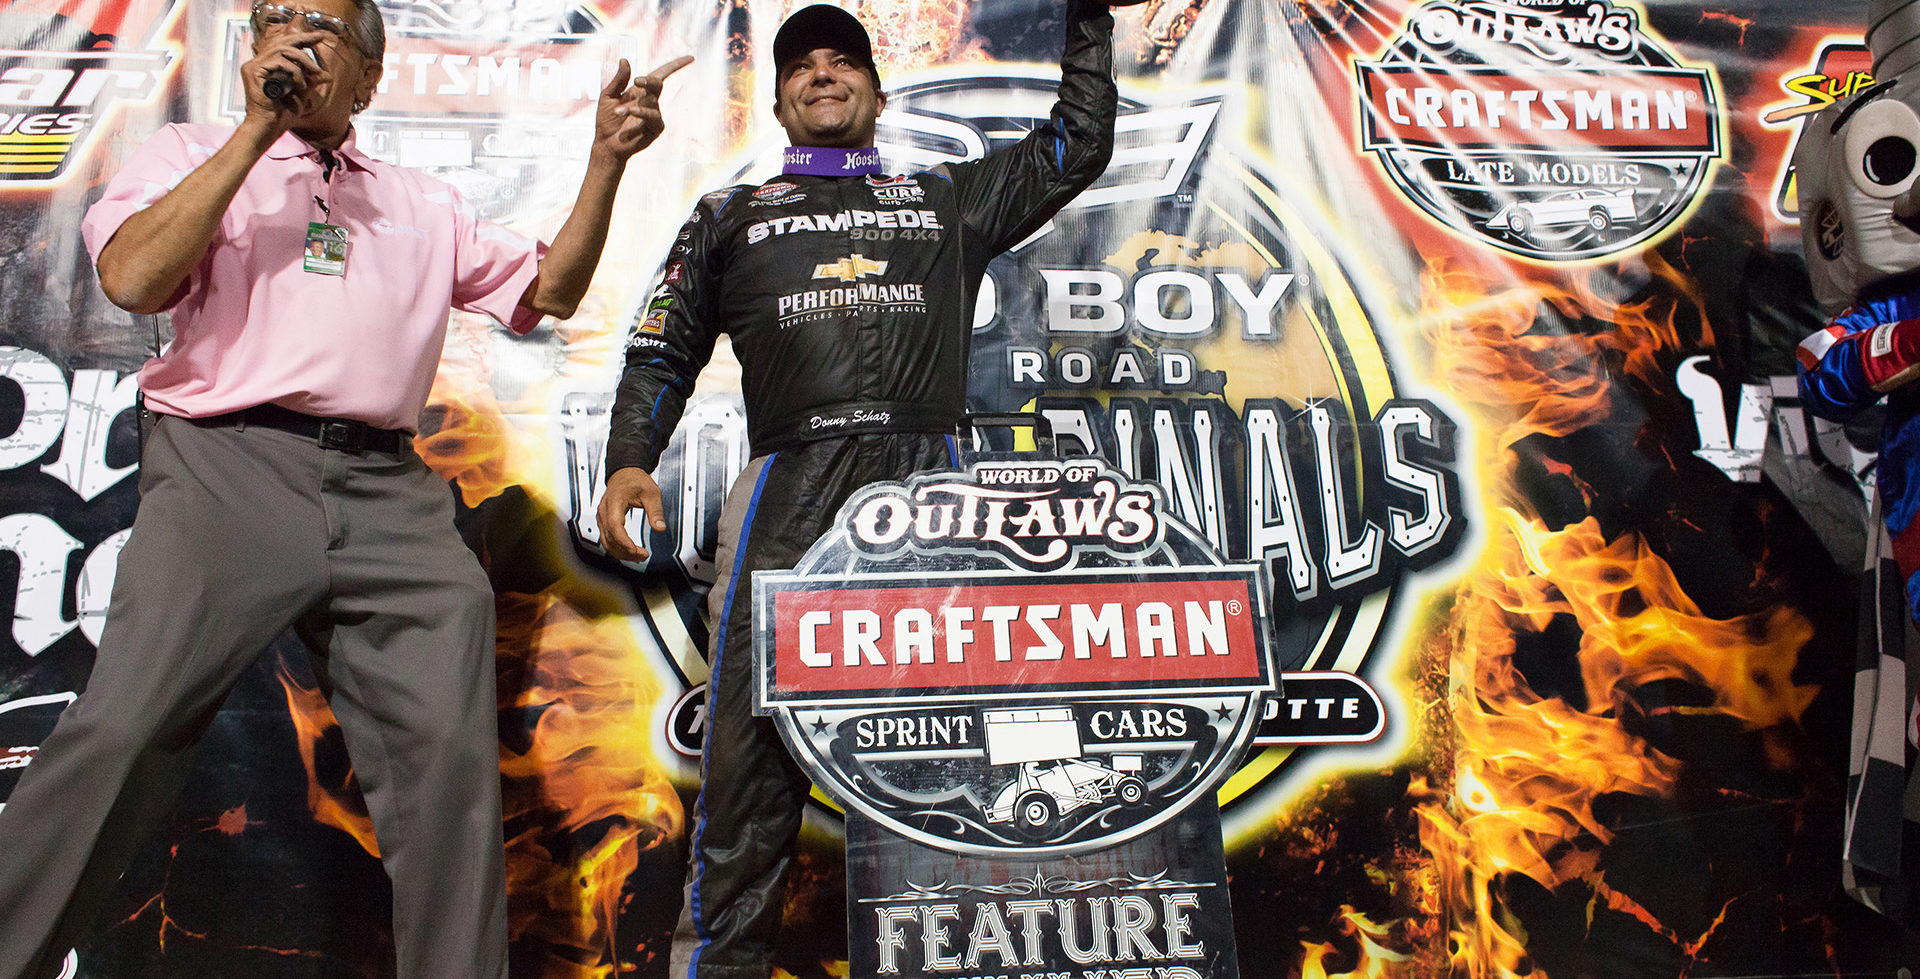 Donny Schatz wins the A main on Saturday, Day 3 of The Bad Boy Off Road World of Outlaws World Finals at The Dirt Track at Charlotte in Charlotte, North Carolina in 201. Donny Schatz started 5th and quickly rose to 1st. Schatz held on and never looked backed, to pick up his 25th win of the year.( Jeffrey Turford / TDP )